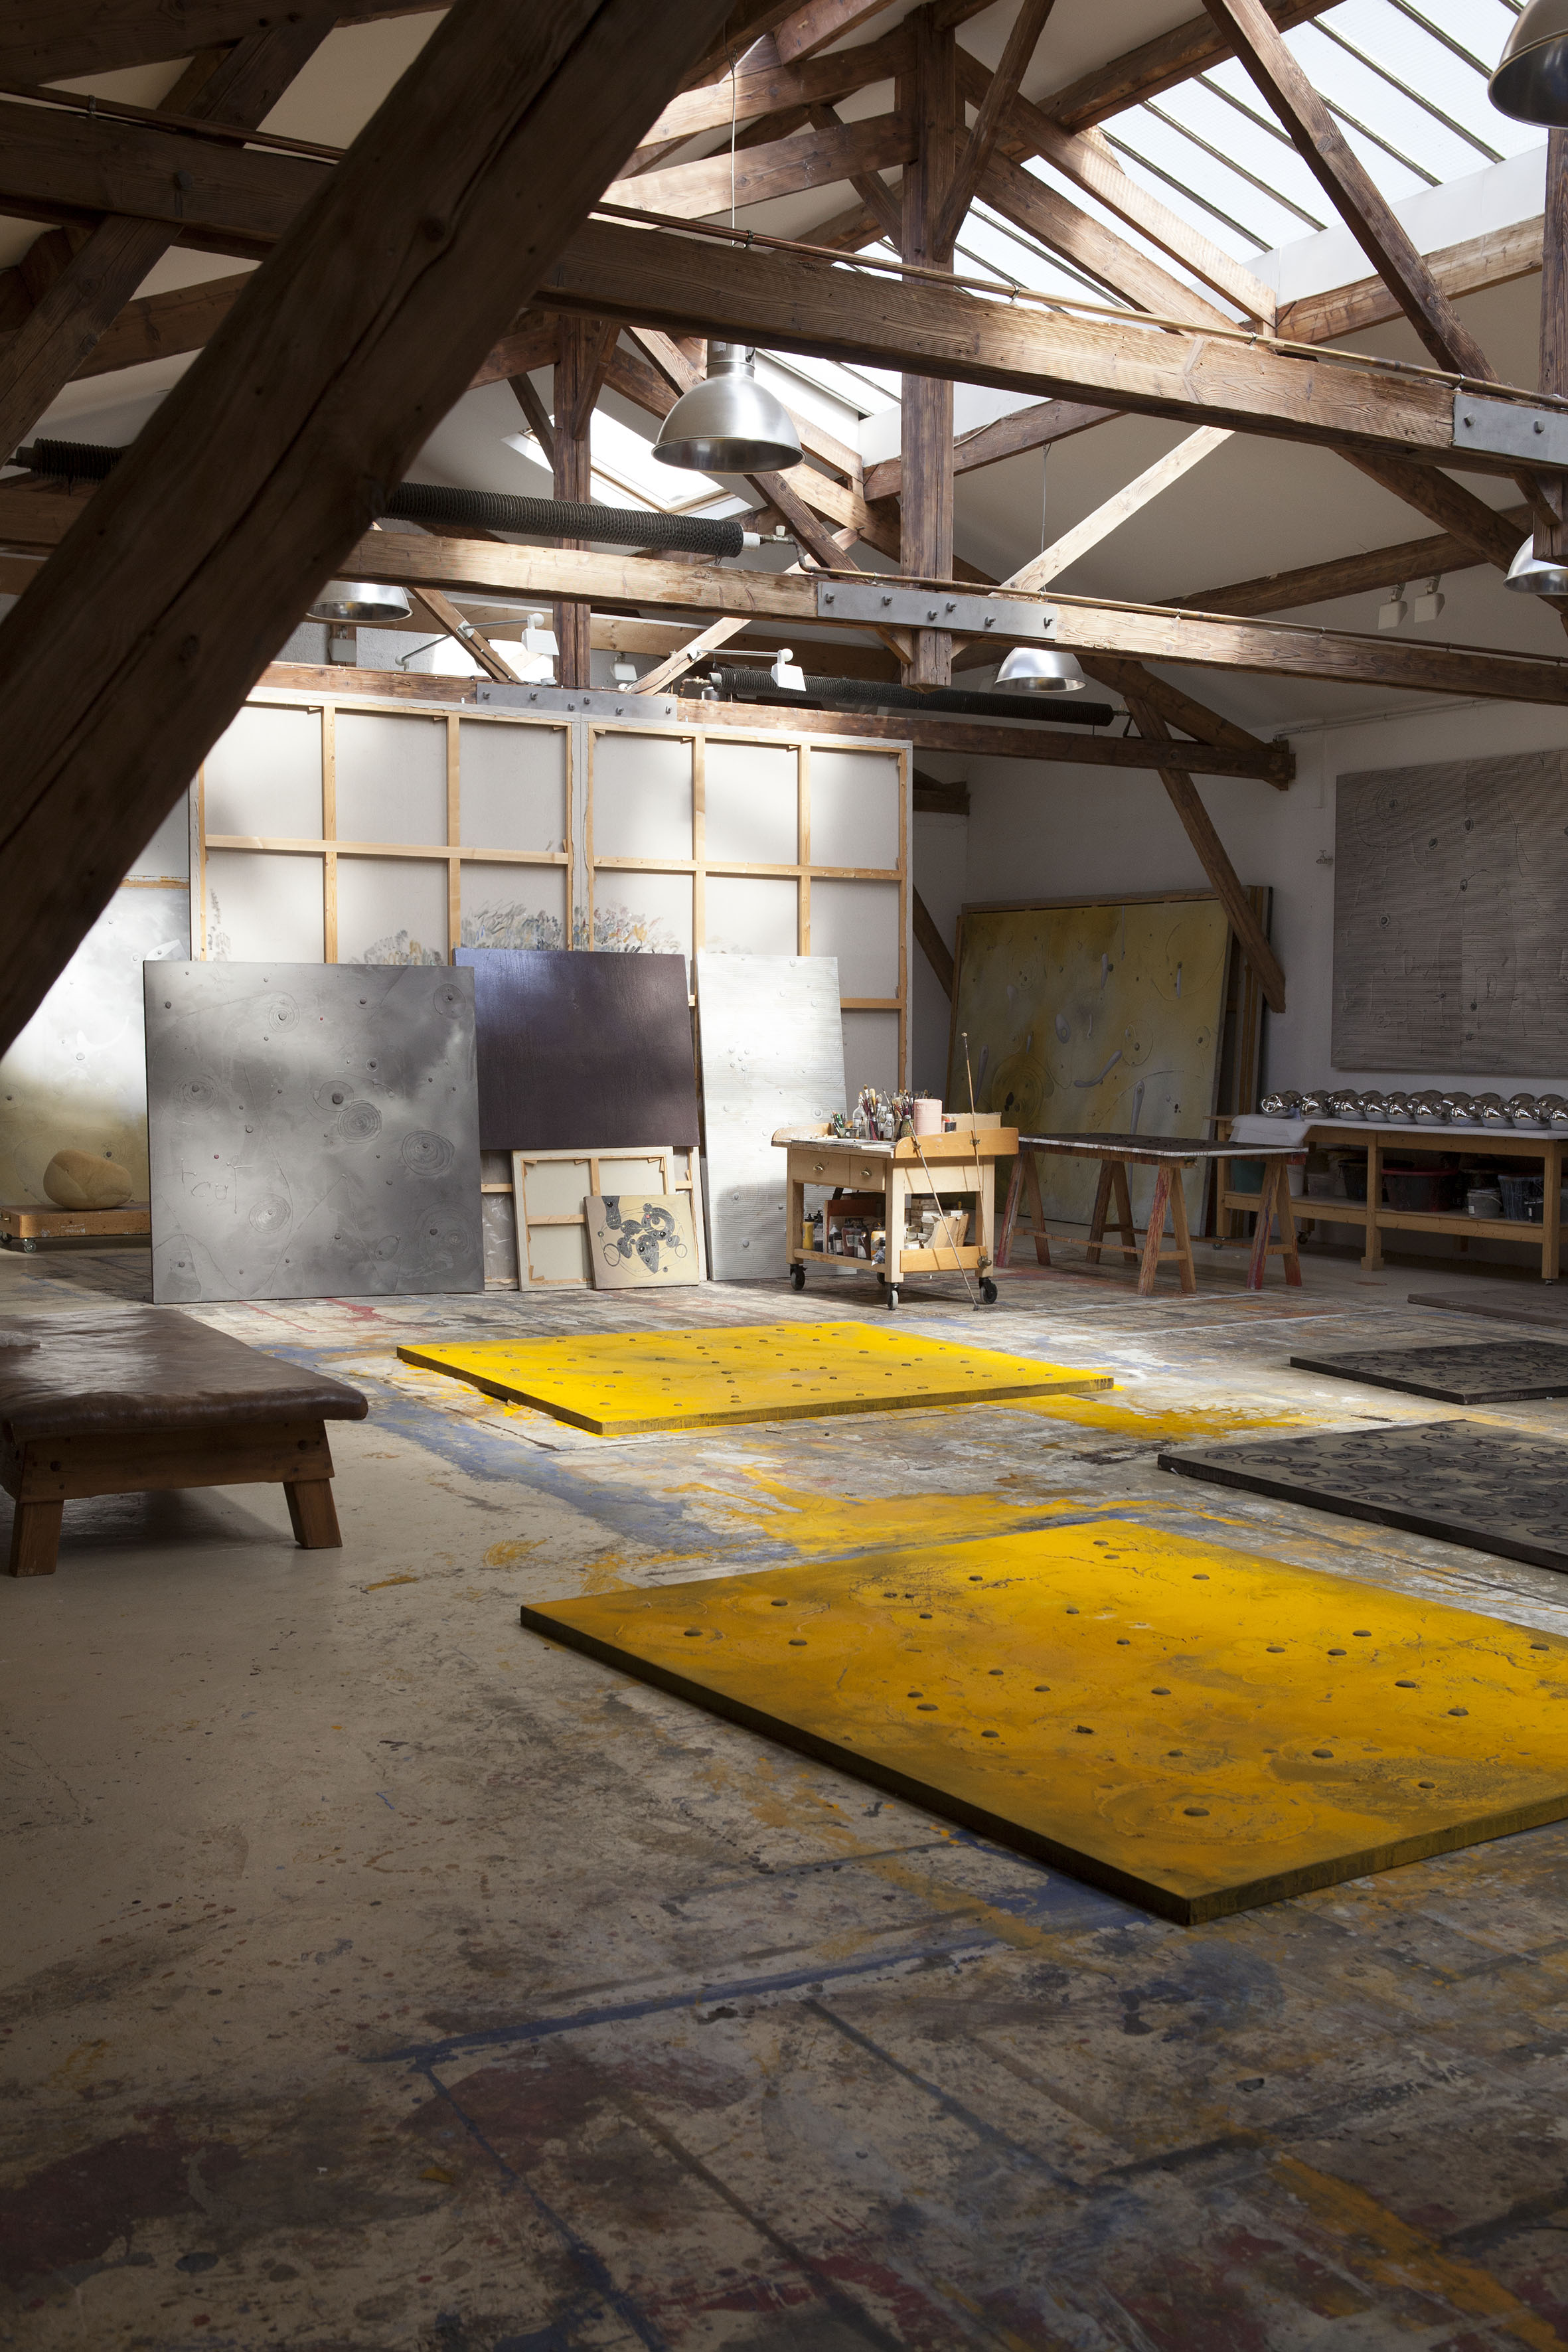 Richard Texier Currently working on new series of painting in his Parisian Workshop